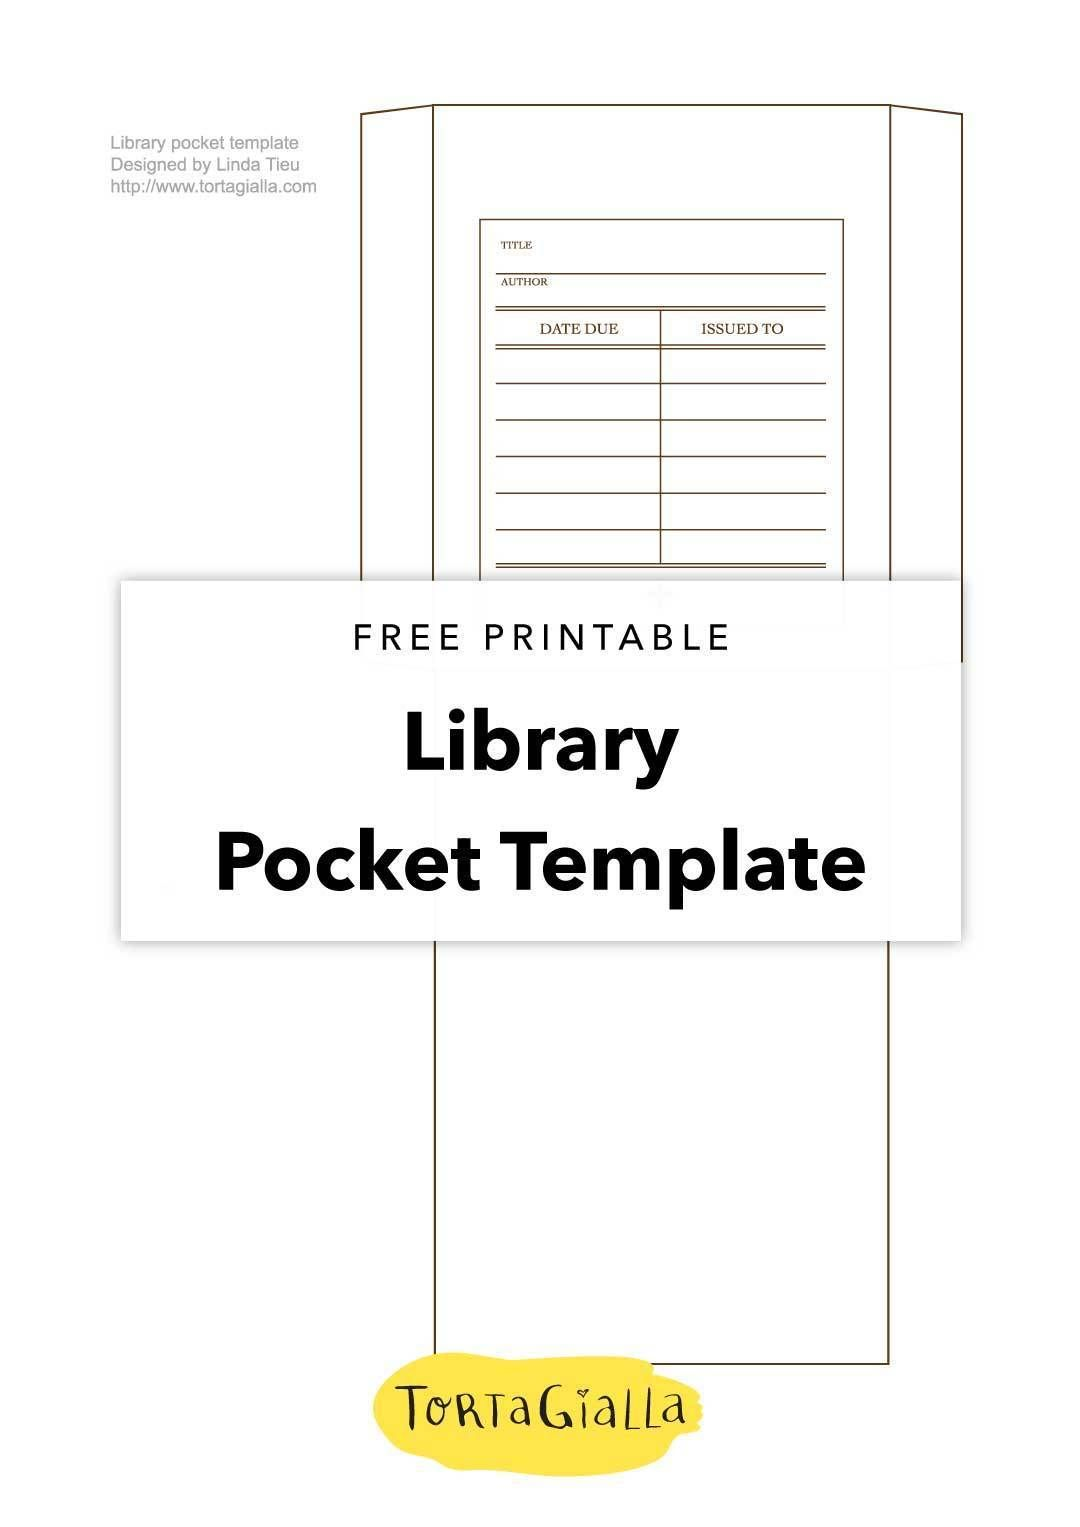 Printable Library Card Template Free Download Tortagialla Card Templates Free Templates Printable Free Library Card